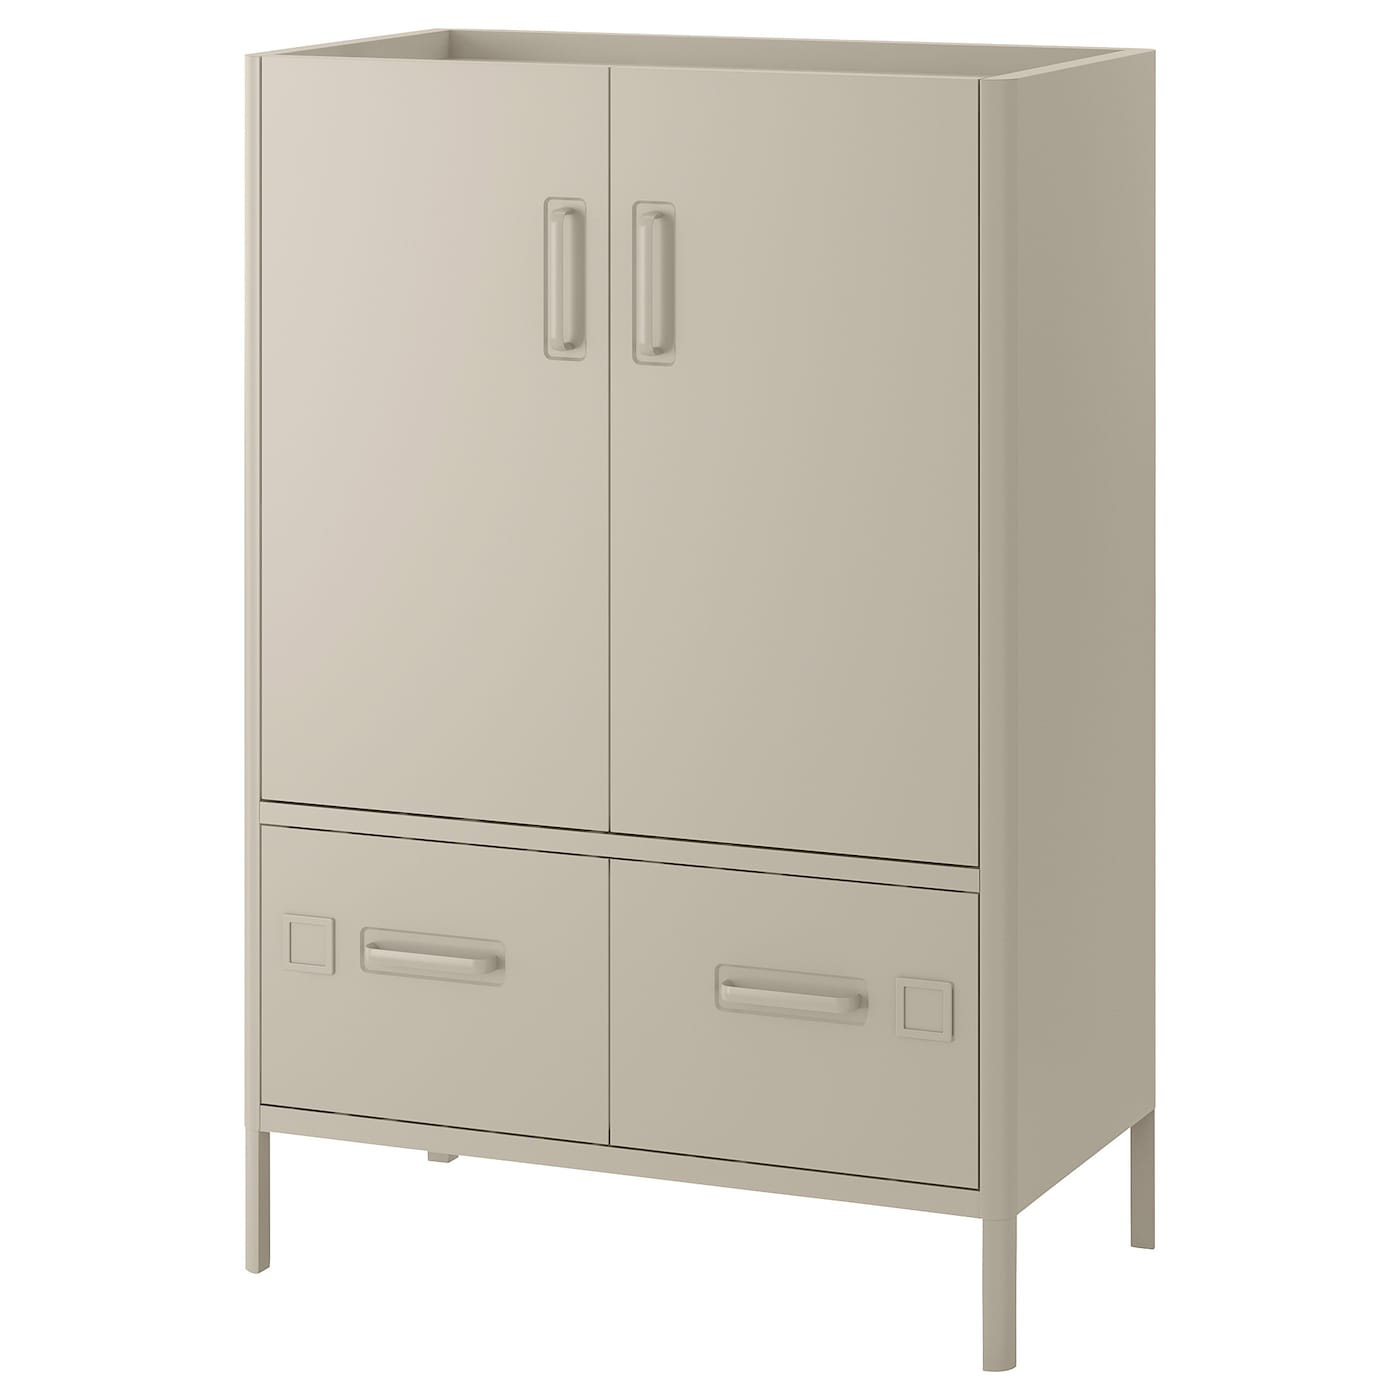 IKEA IDÅSEN cabinet with smart lock Integrated damper closes the drawer silently and gently.